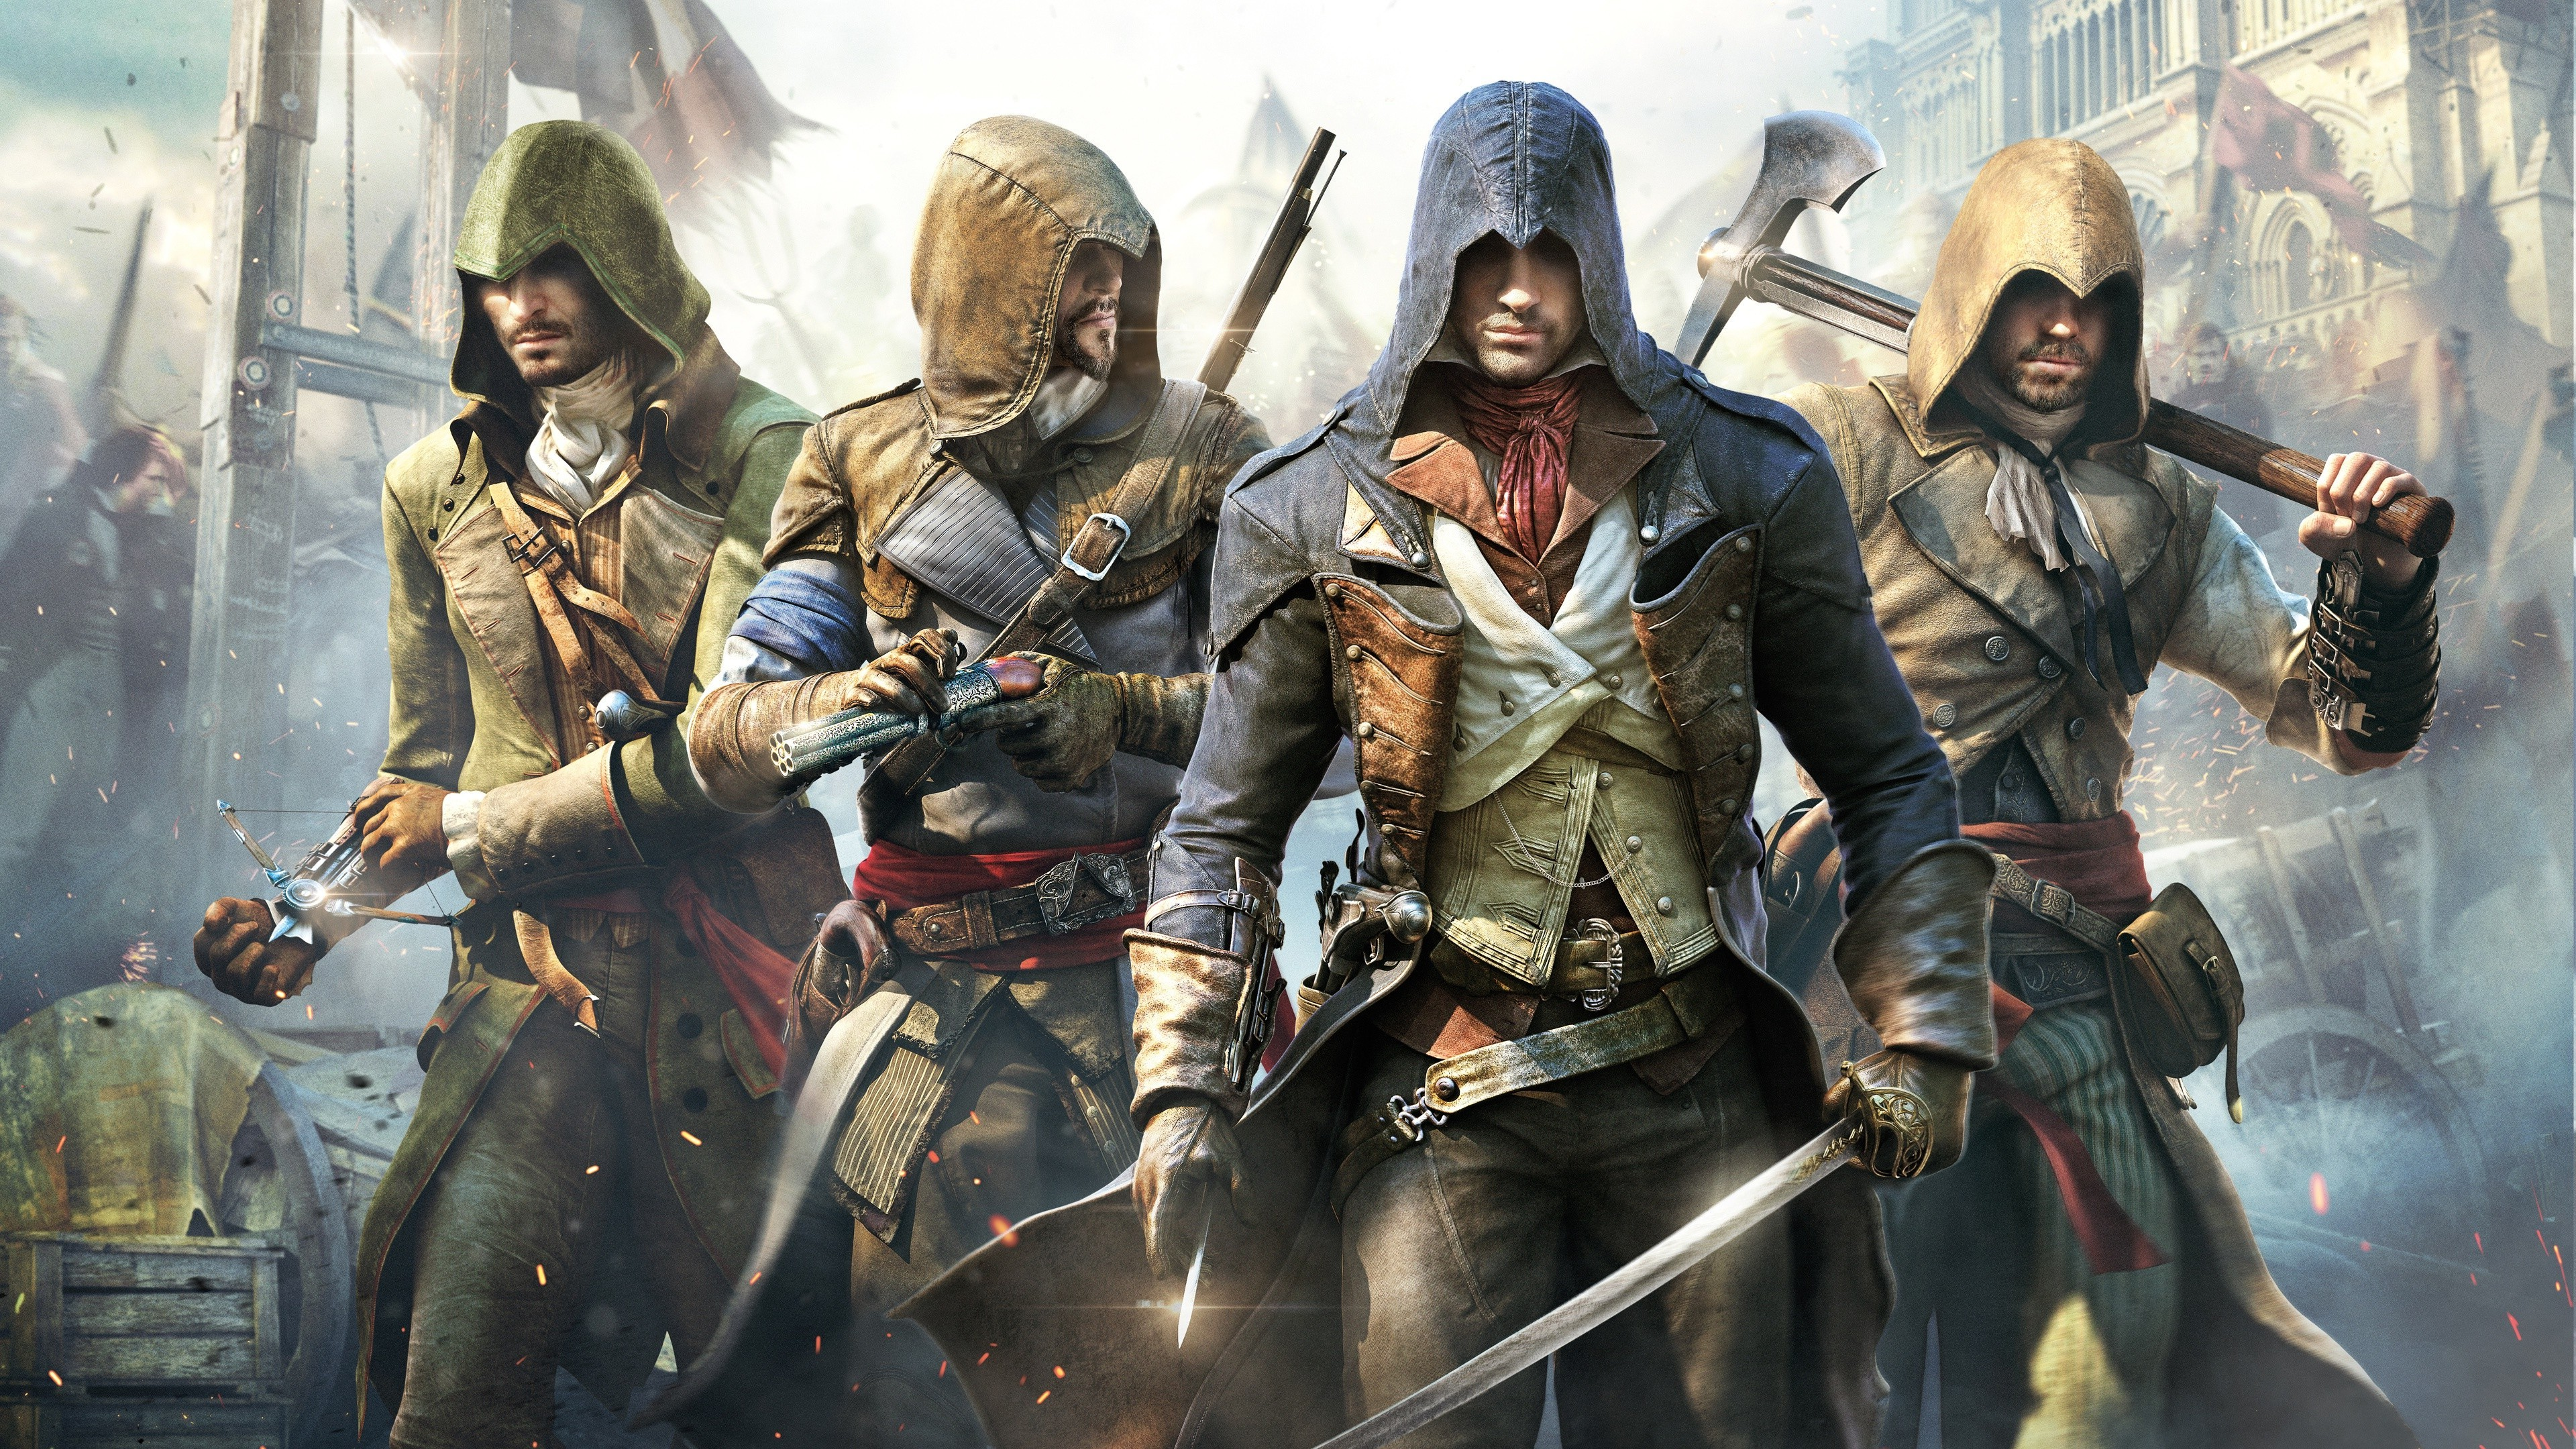 Assassins creed unity wallpapers 83 images - Assassin s creed unity wallpaper ...